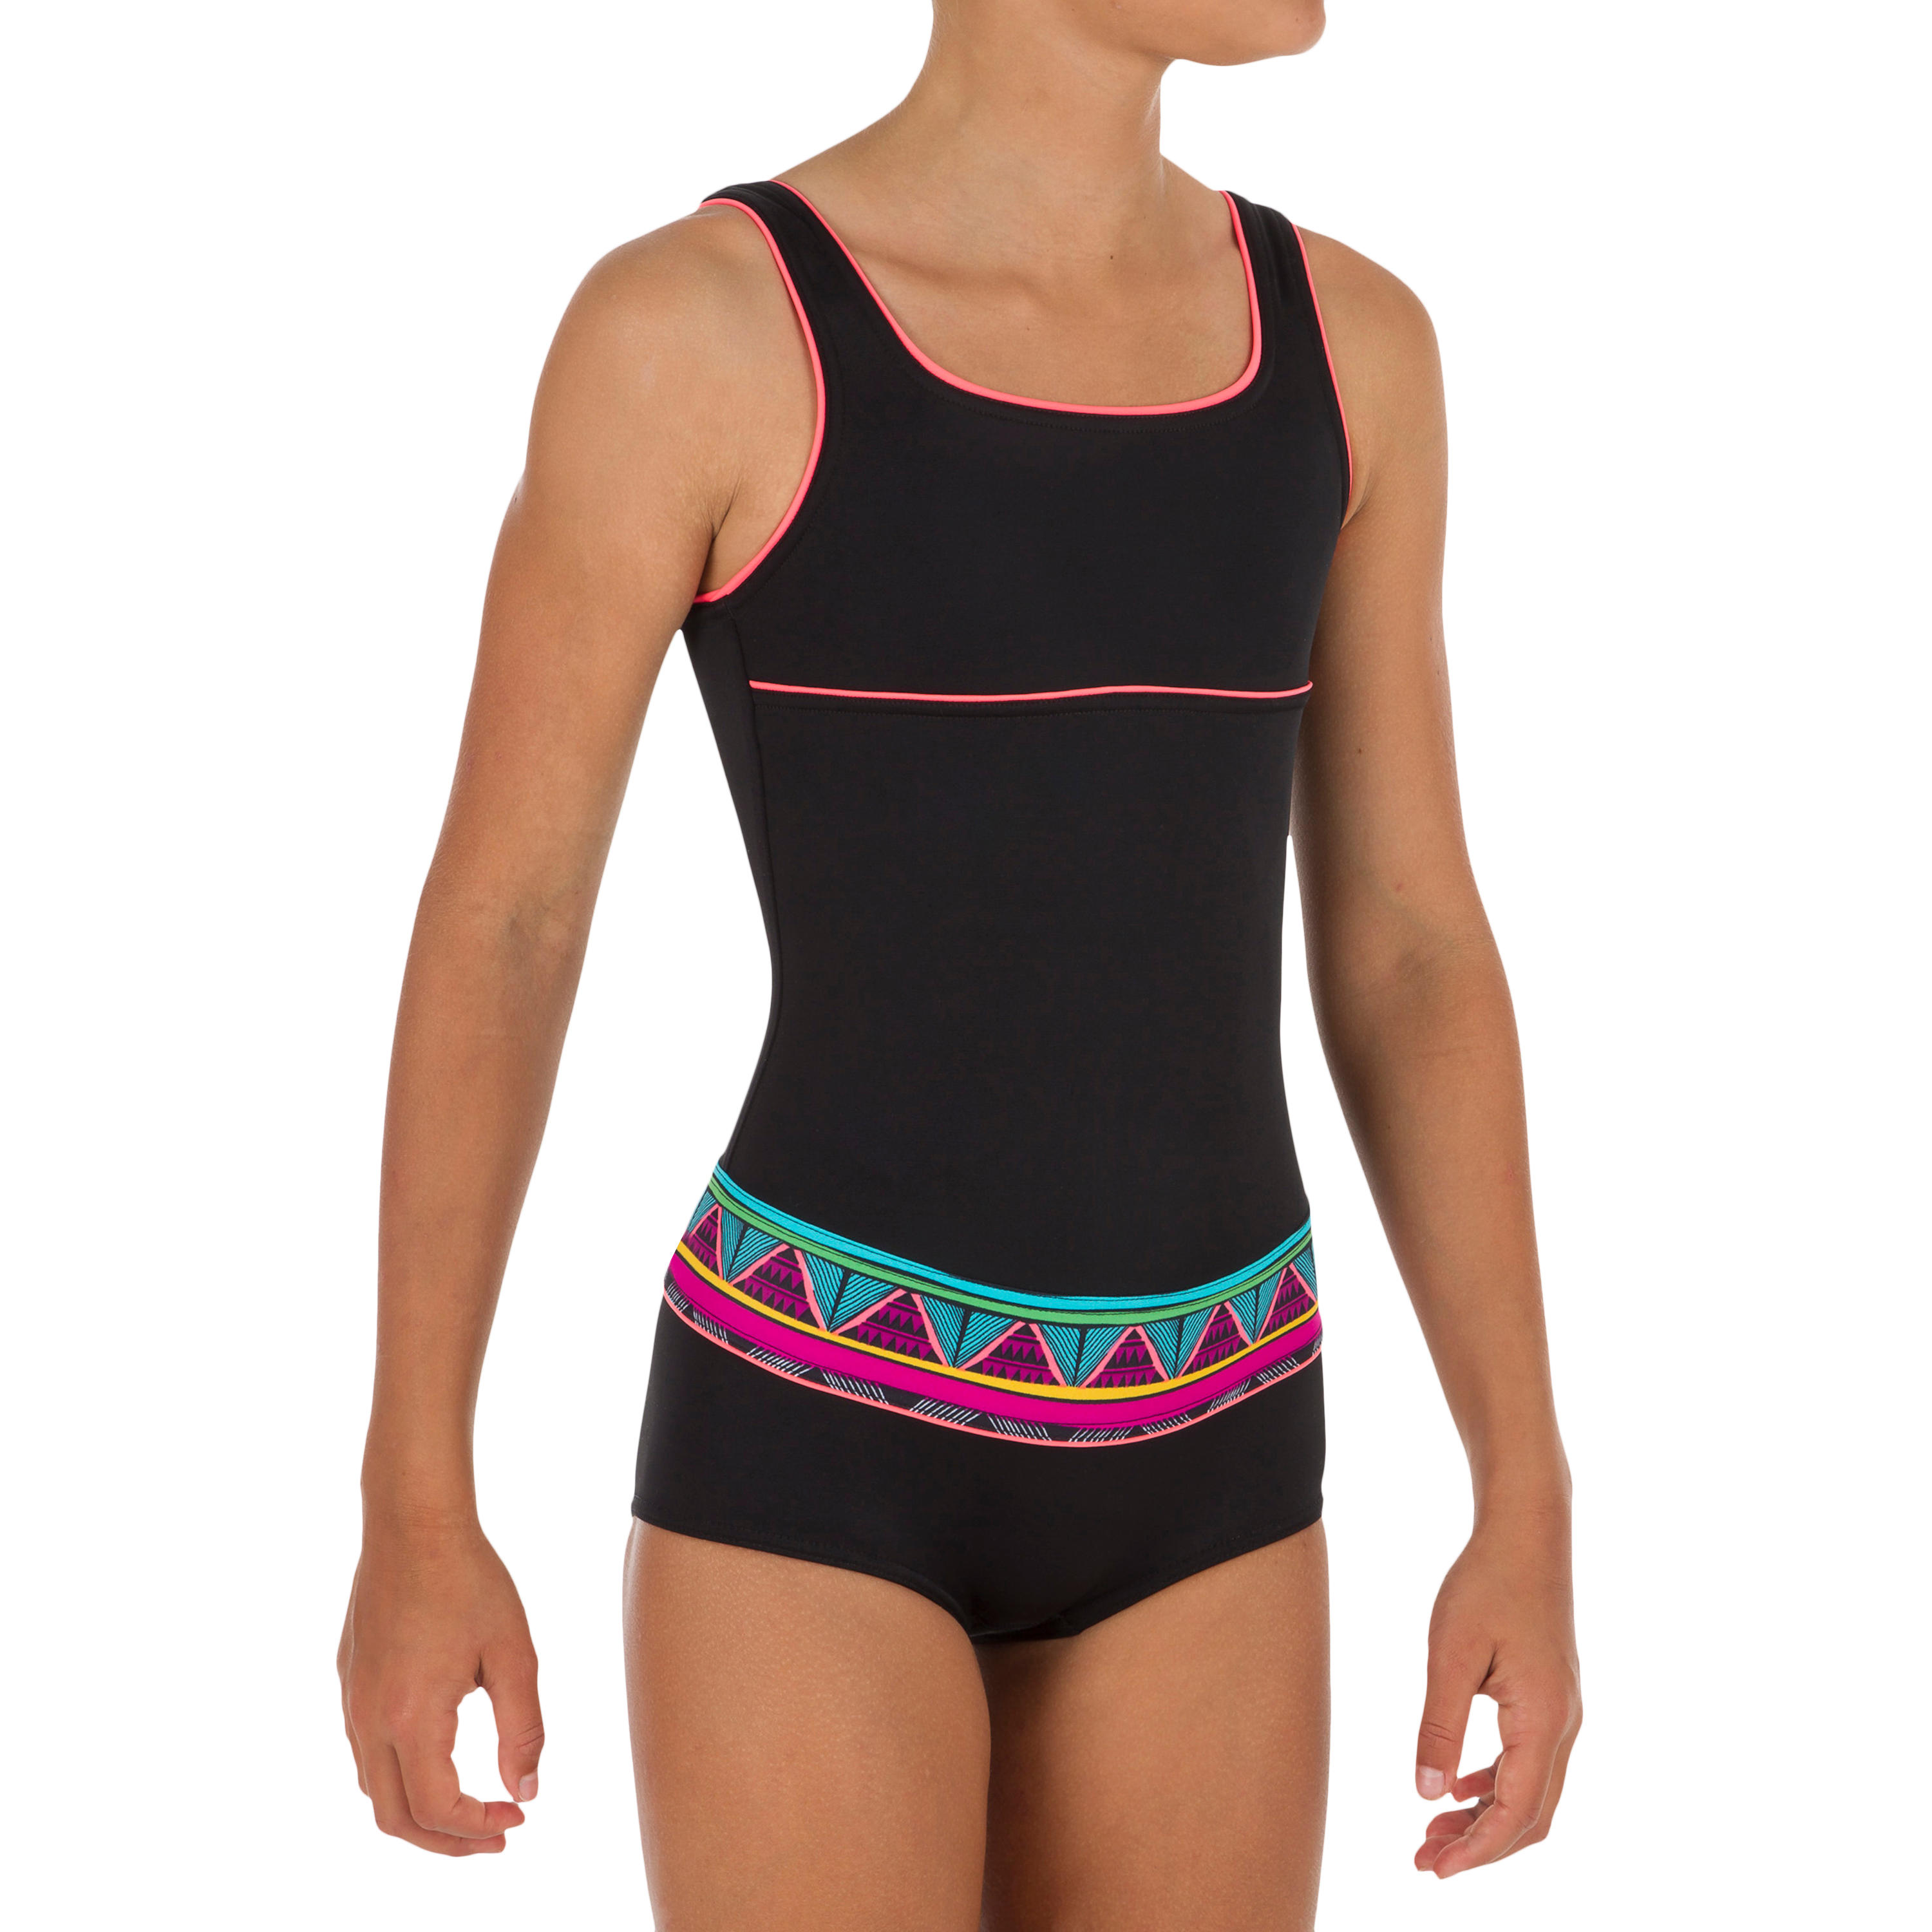 GIRL'S RIO NAIMI ONE-PIECE SHORTY SWIMSUIT WITH OPEN BACK